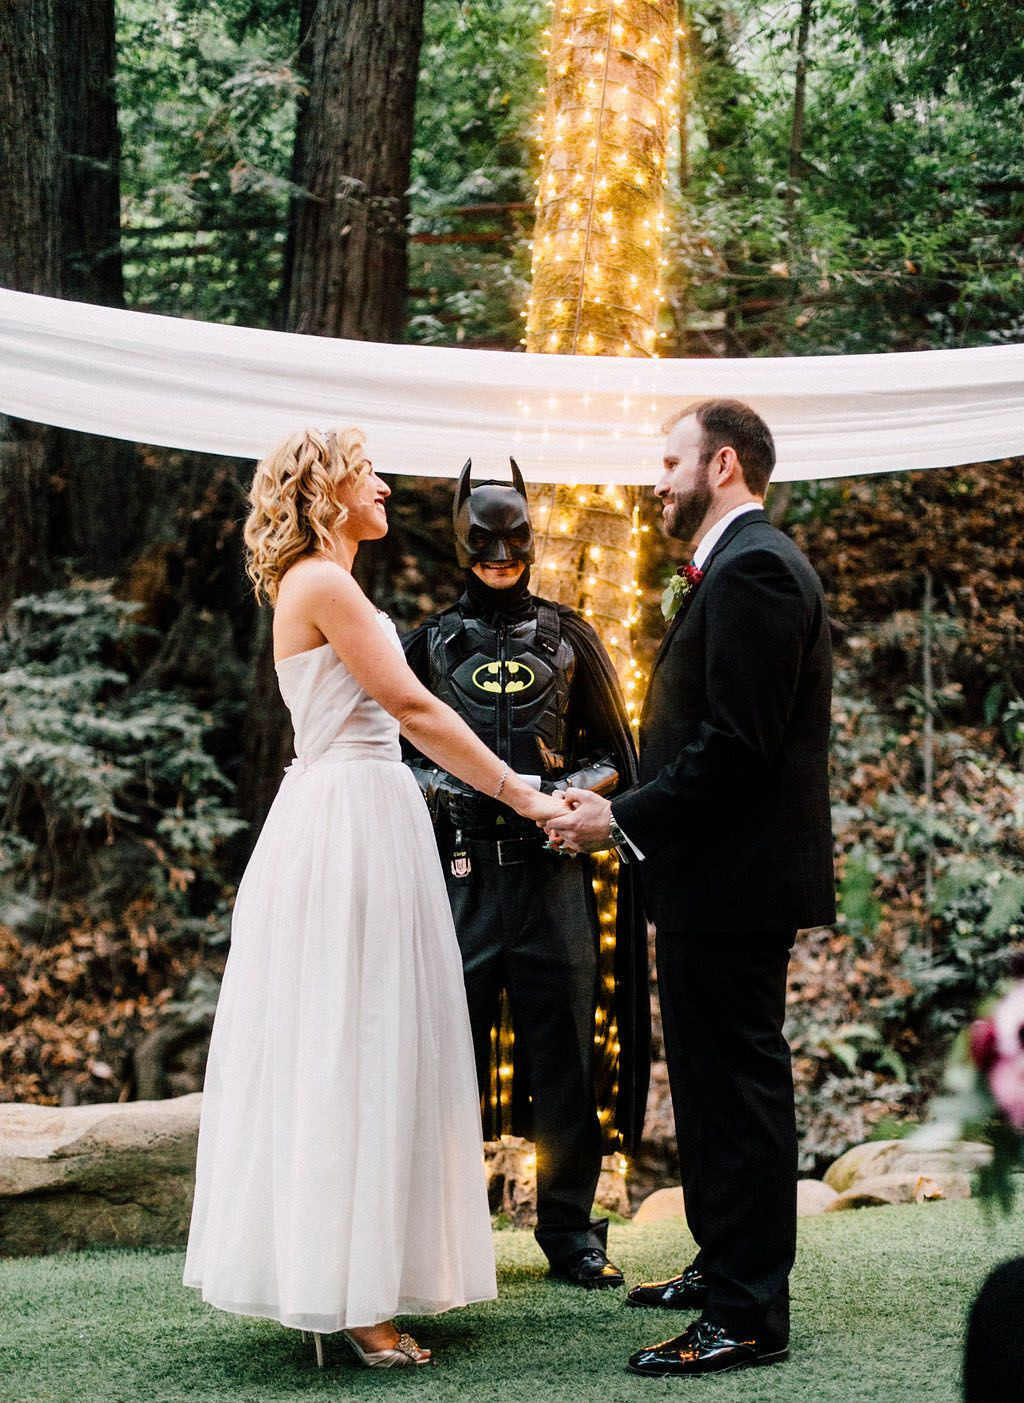 Pin by jooana on wedding ideas for you | Pinterest | Batman wedding ...